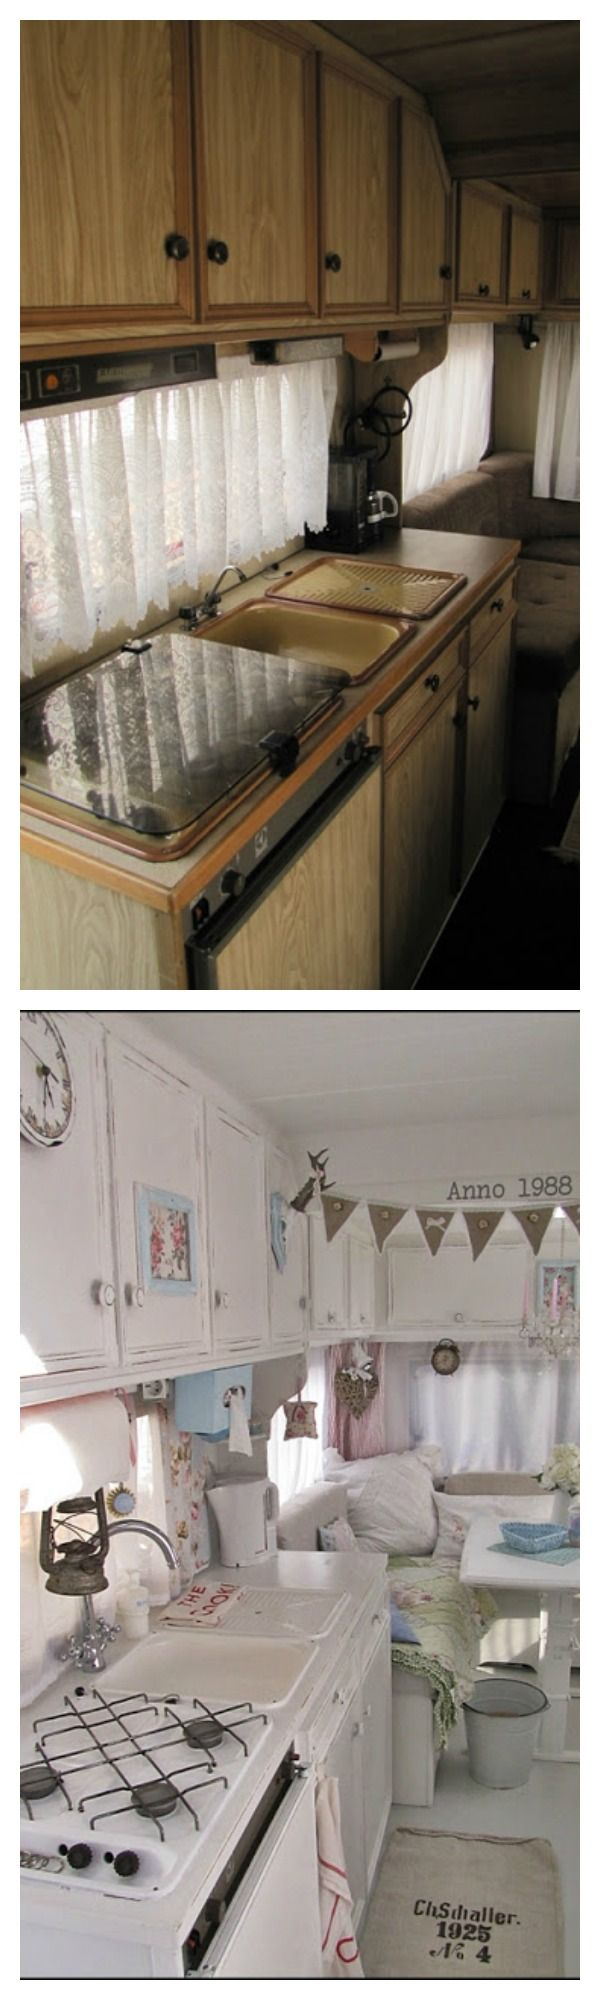 Rv camper Before and After renovation decor